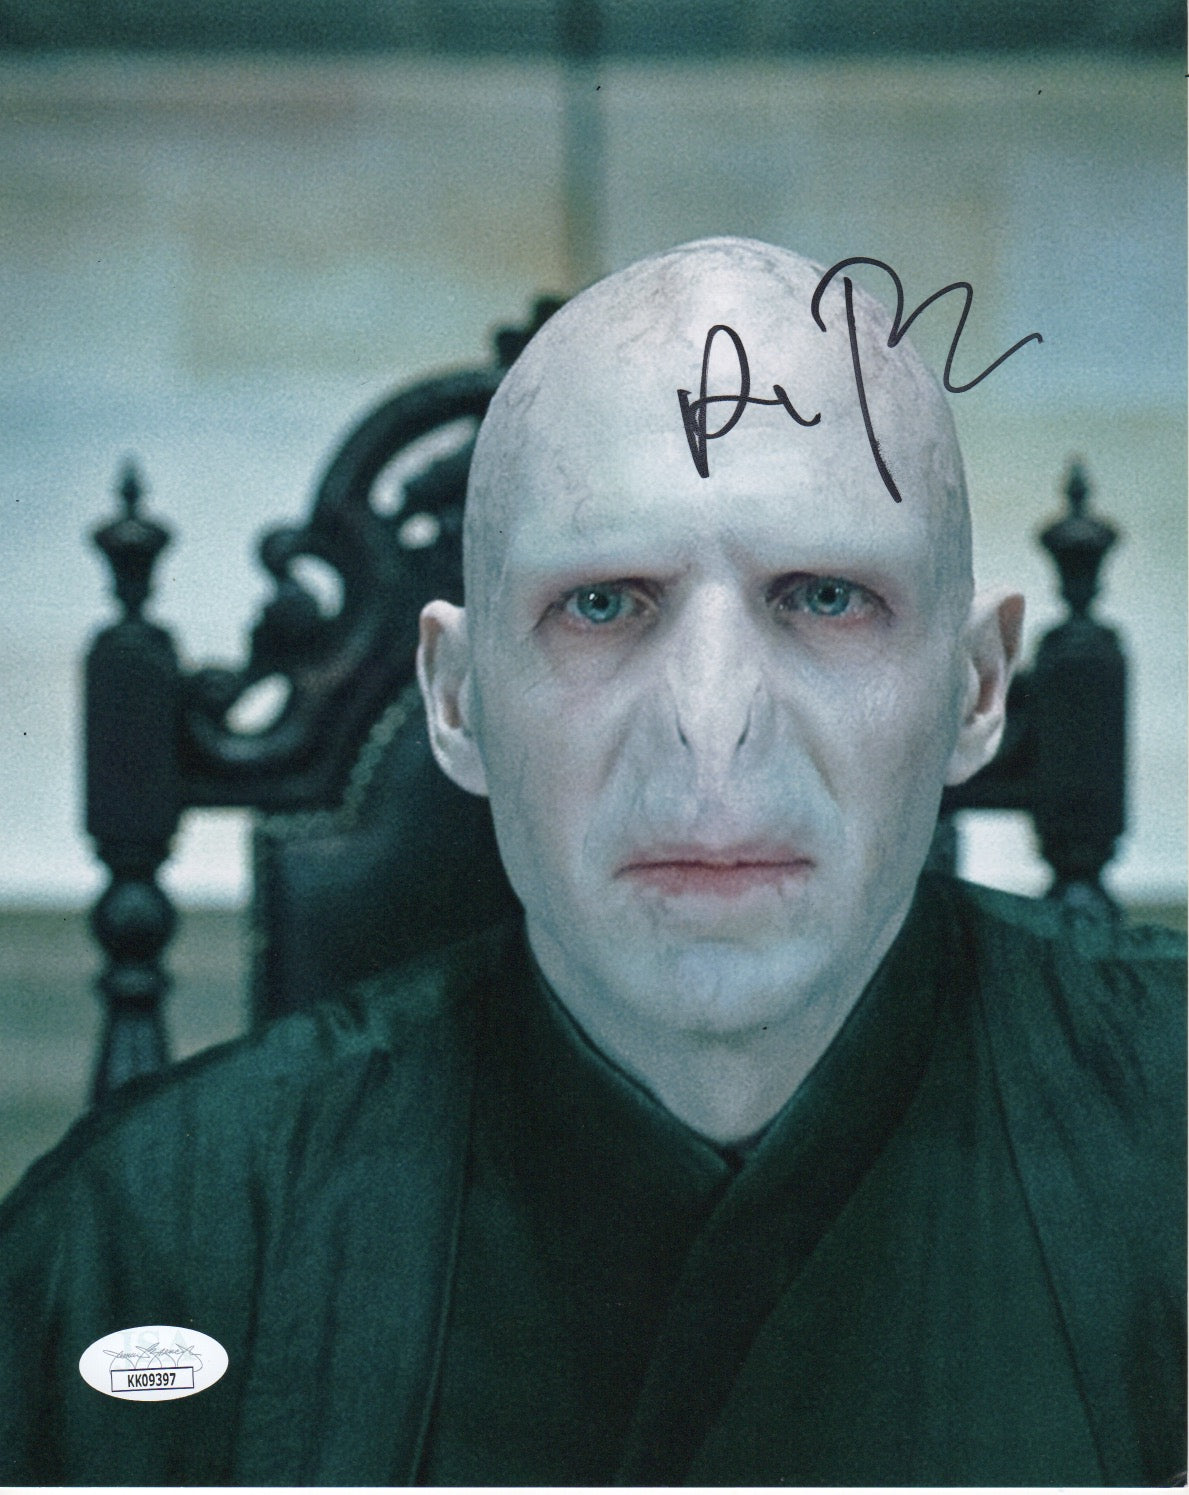 Ralph Fiennes Harry Potter Signed Autograph 8x10 Photo JSA Authentic #7